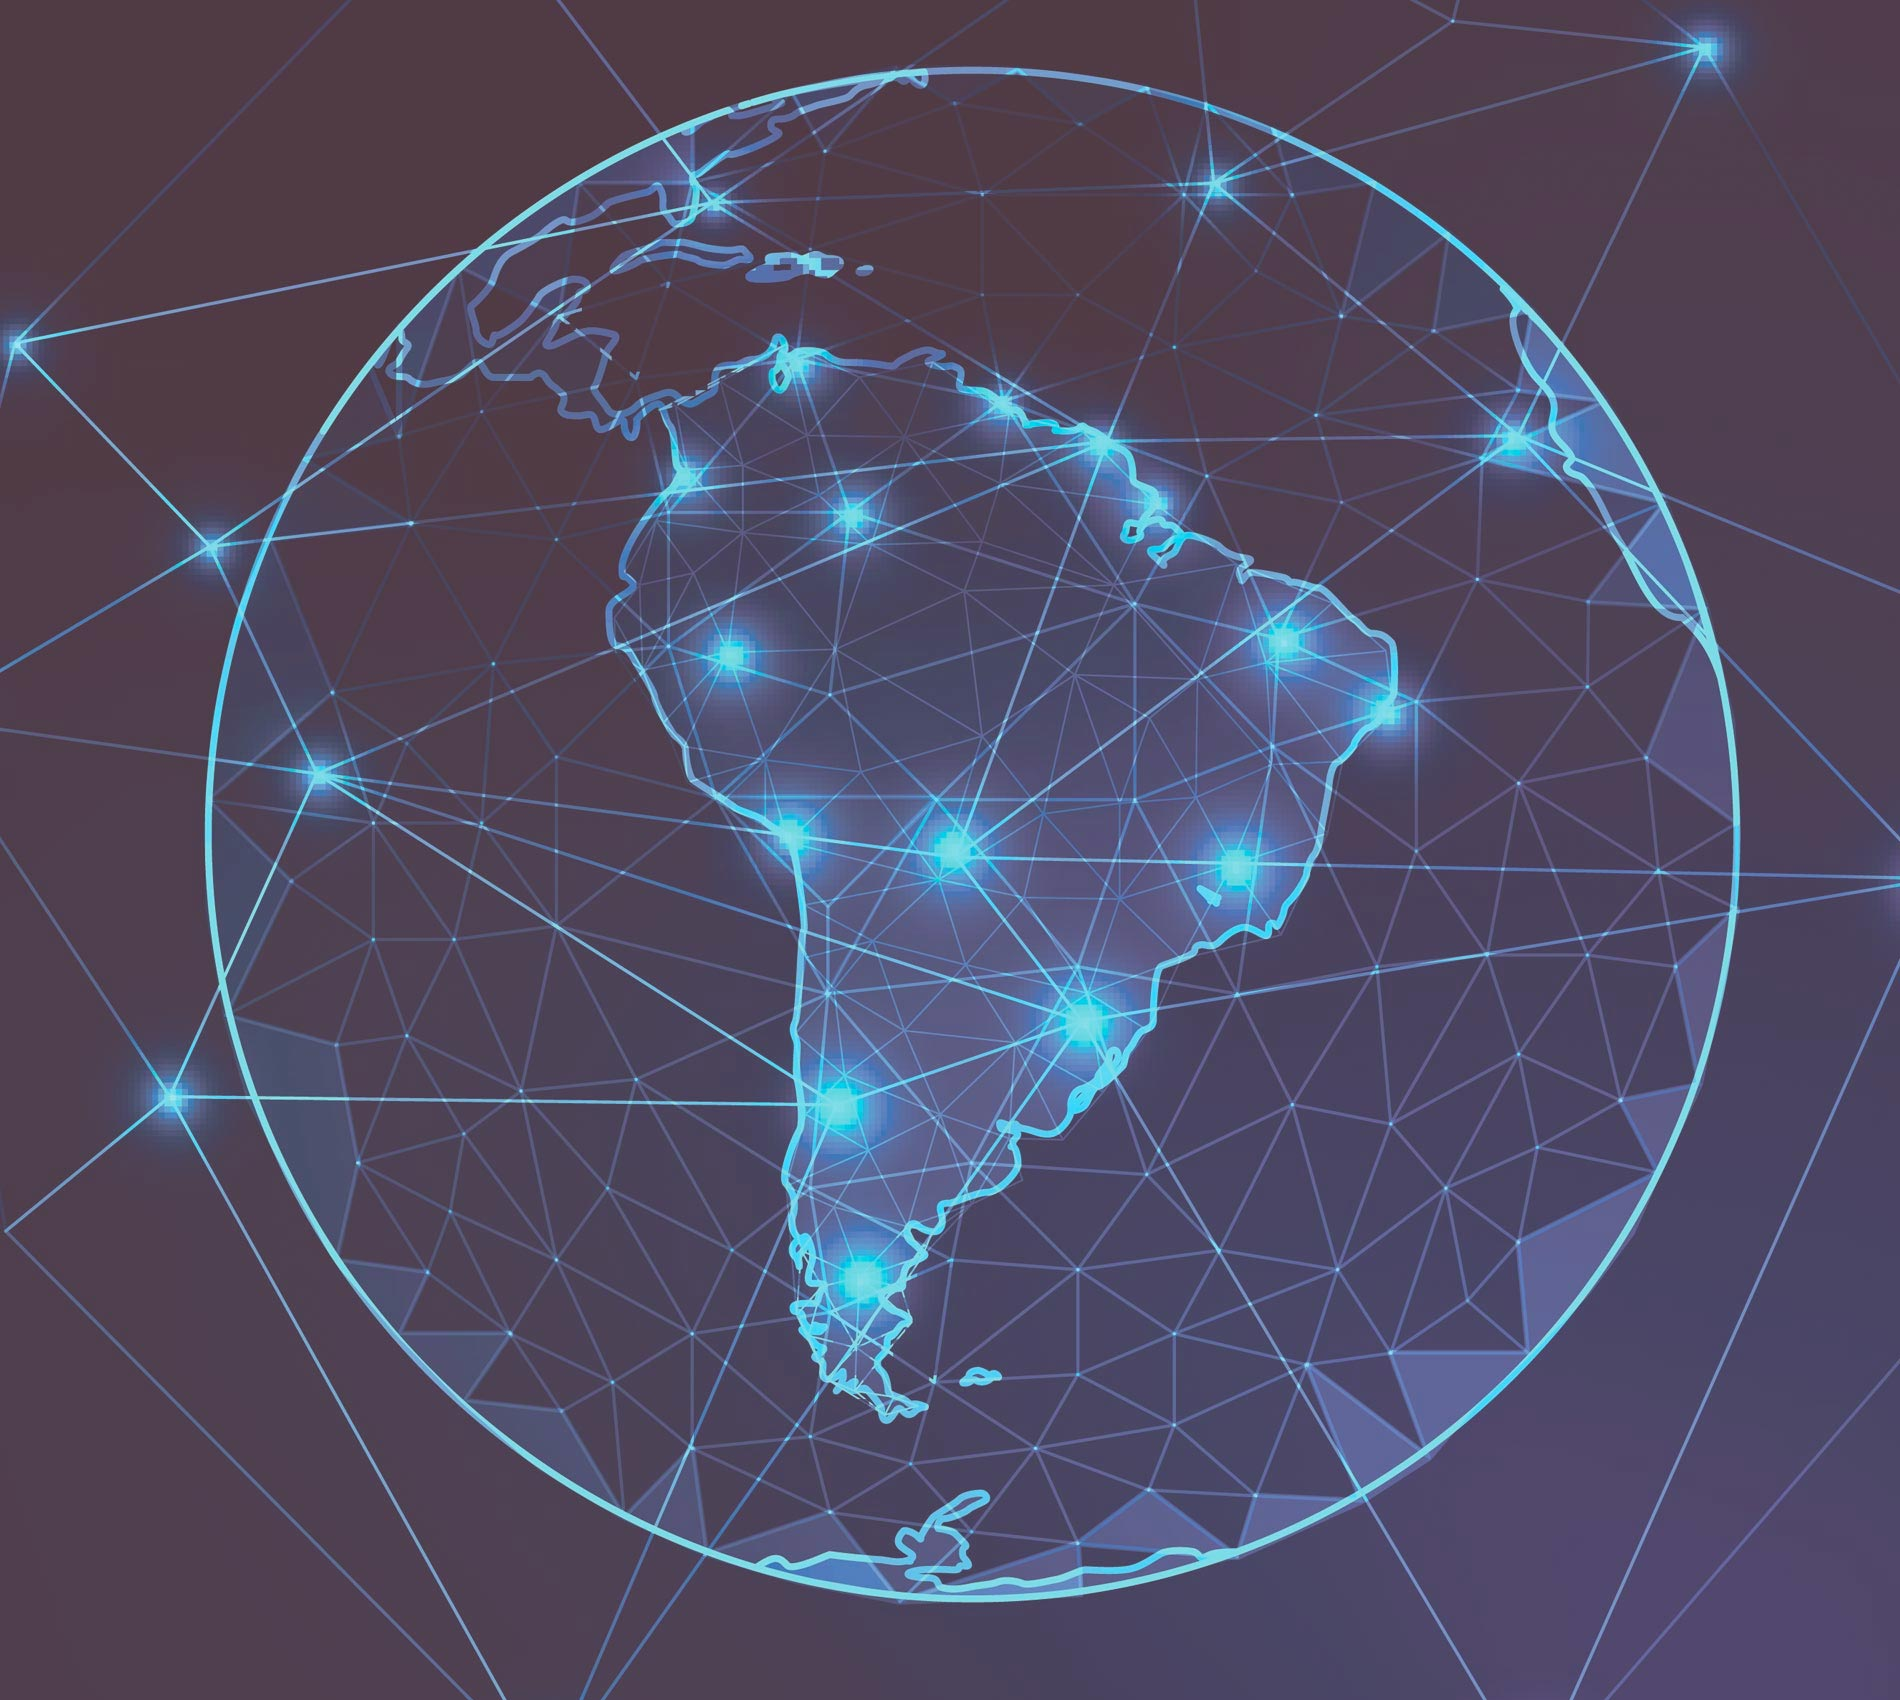 Ecommerce Foundation releases 2019 LATAM report